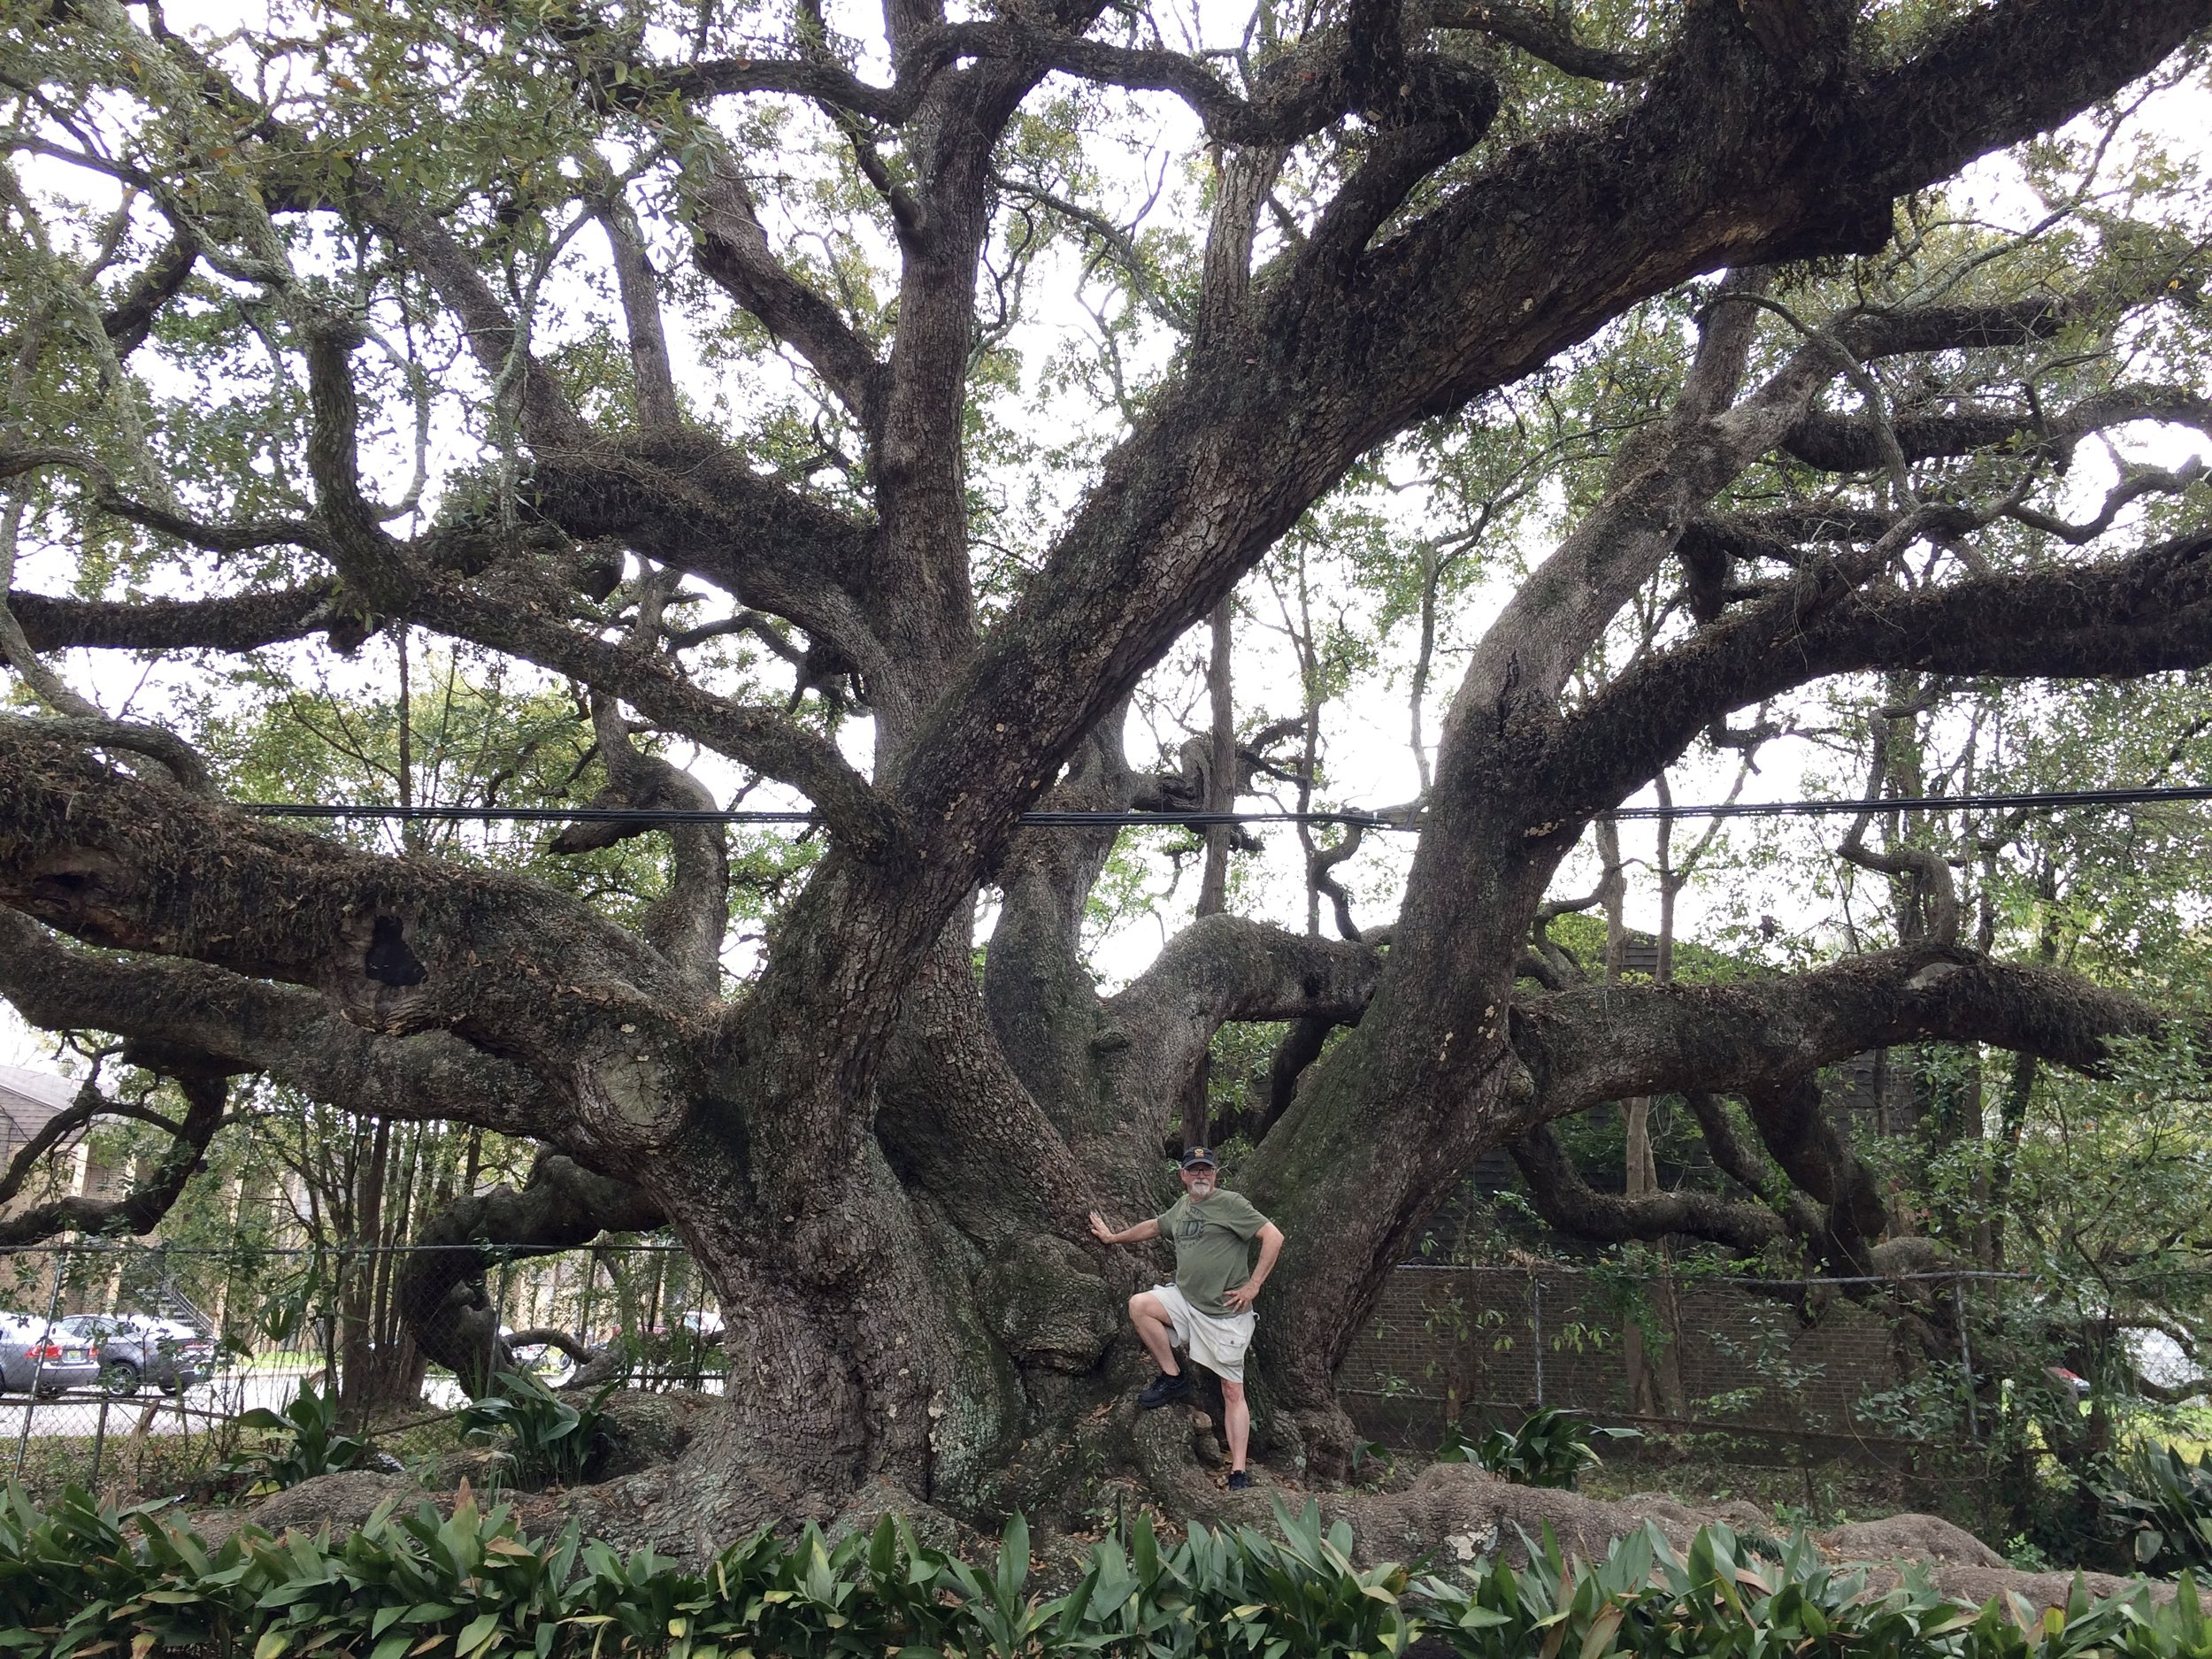 That's me, putting the Duffie Oak in perspective.